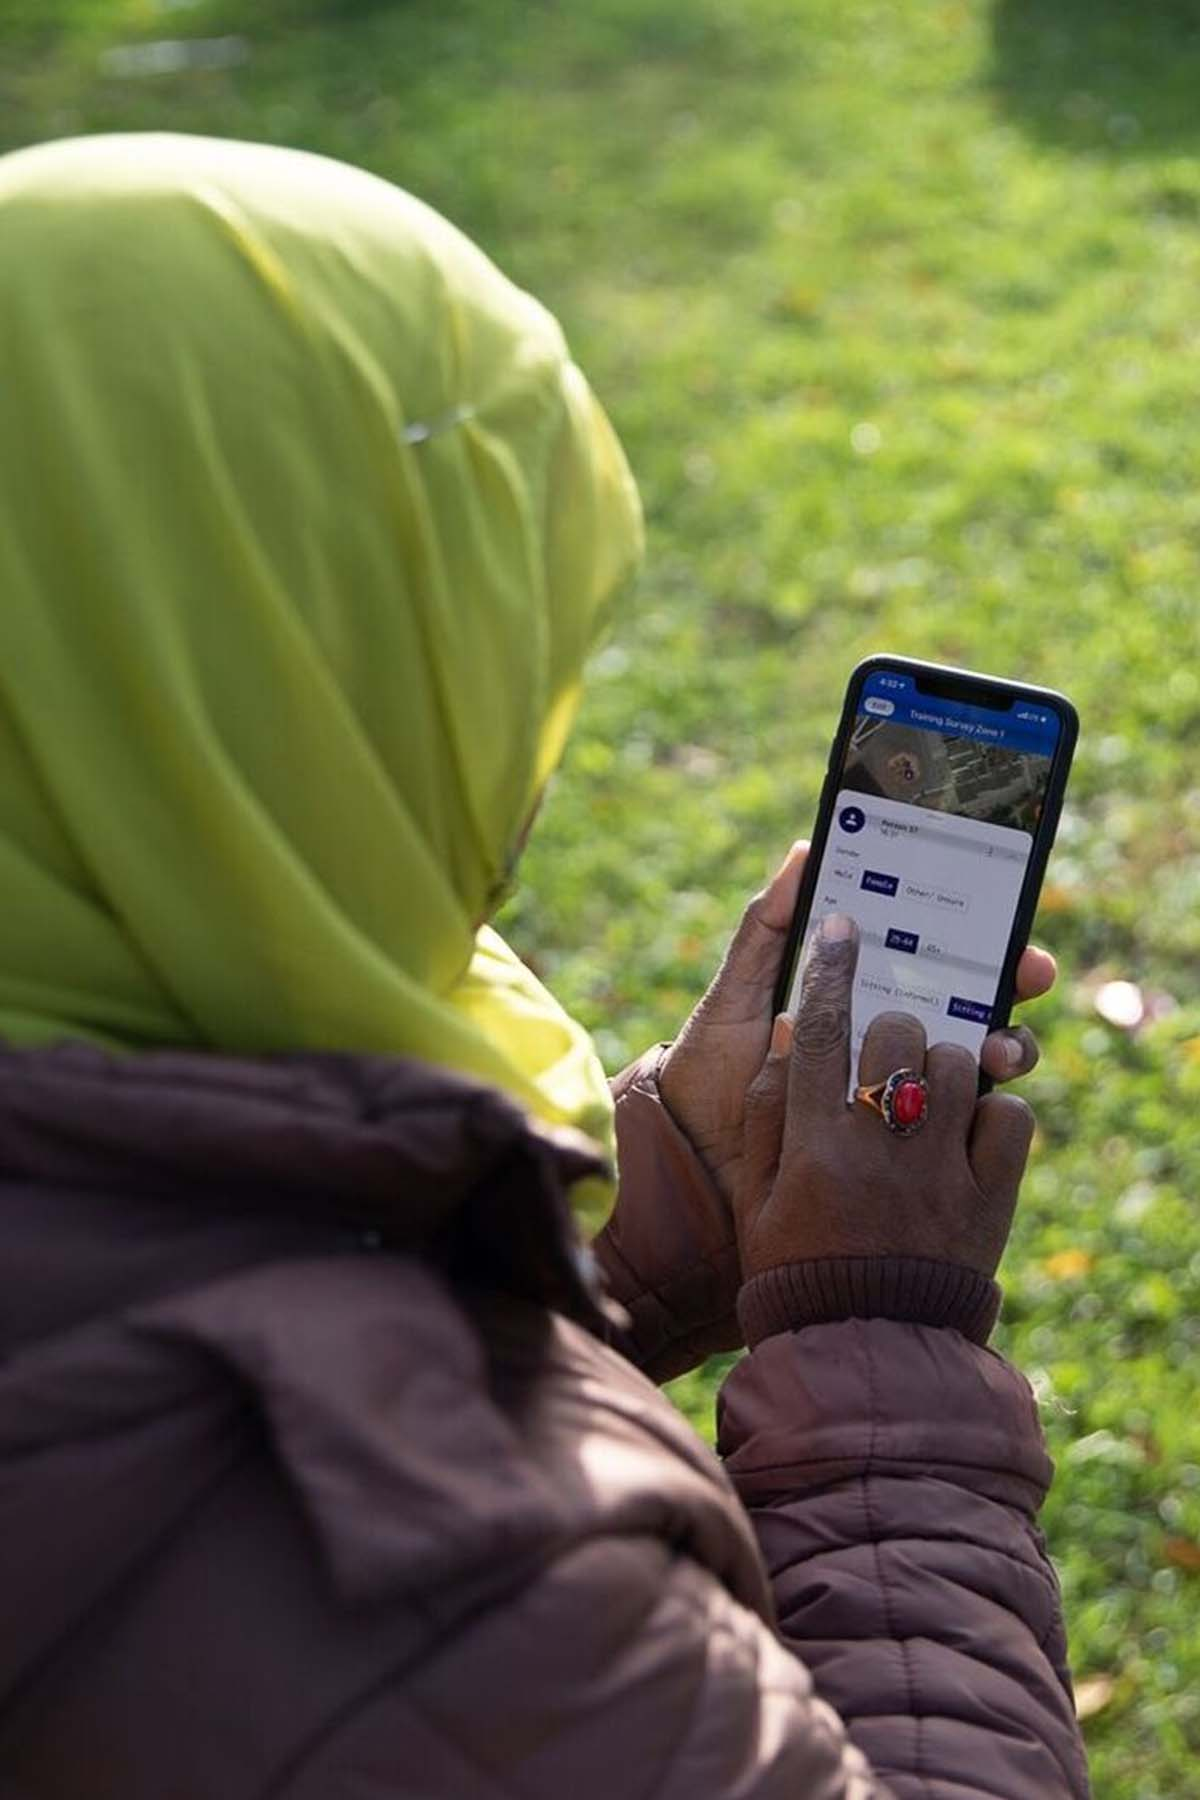 A woman in a hijab looks at her phone